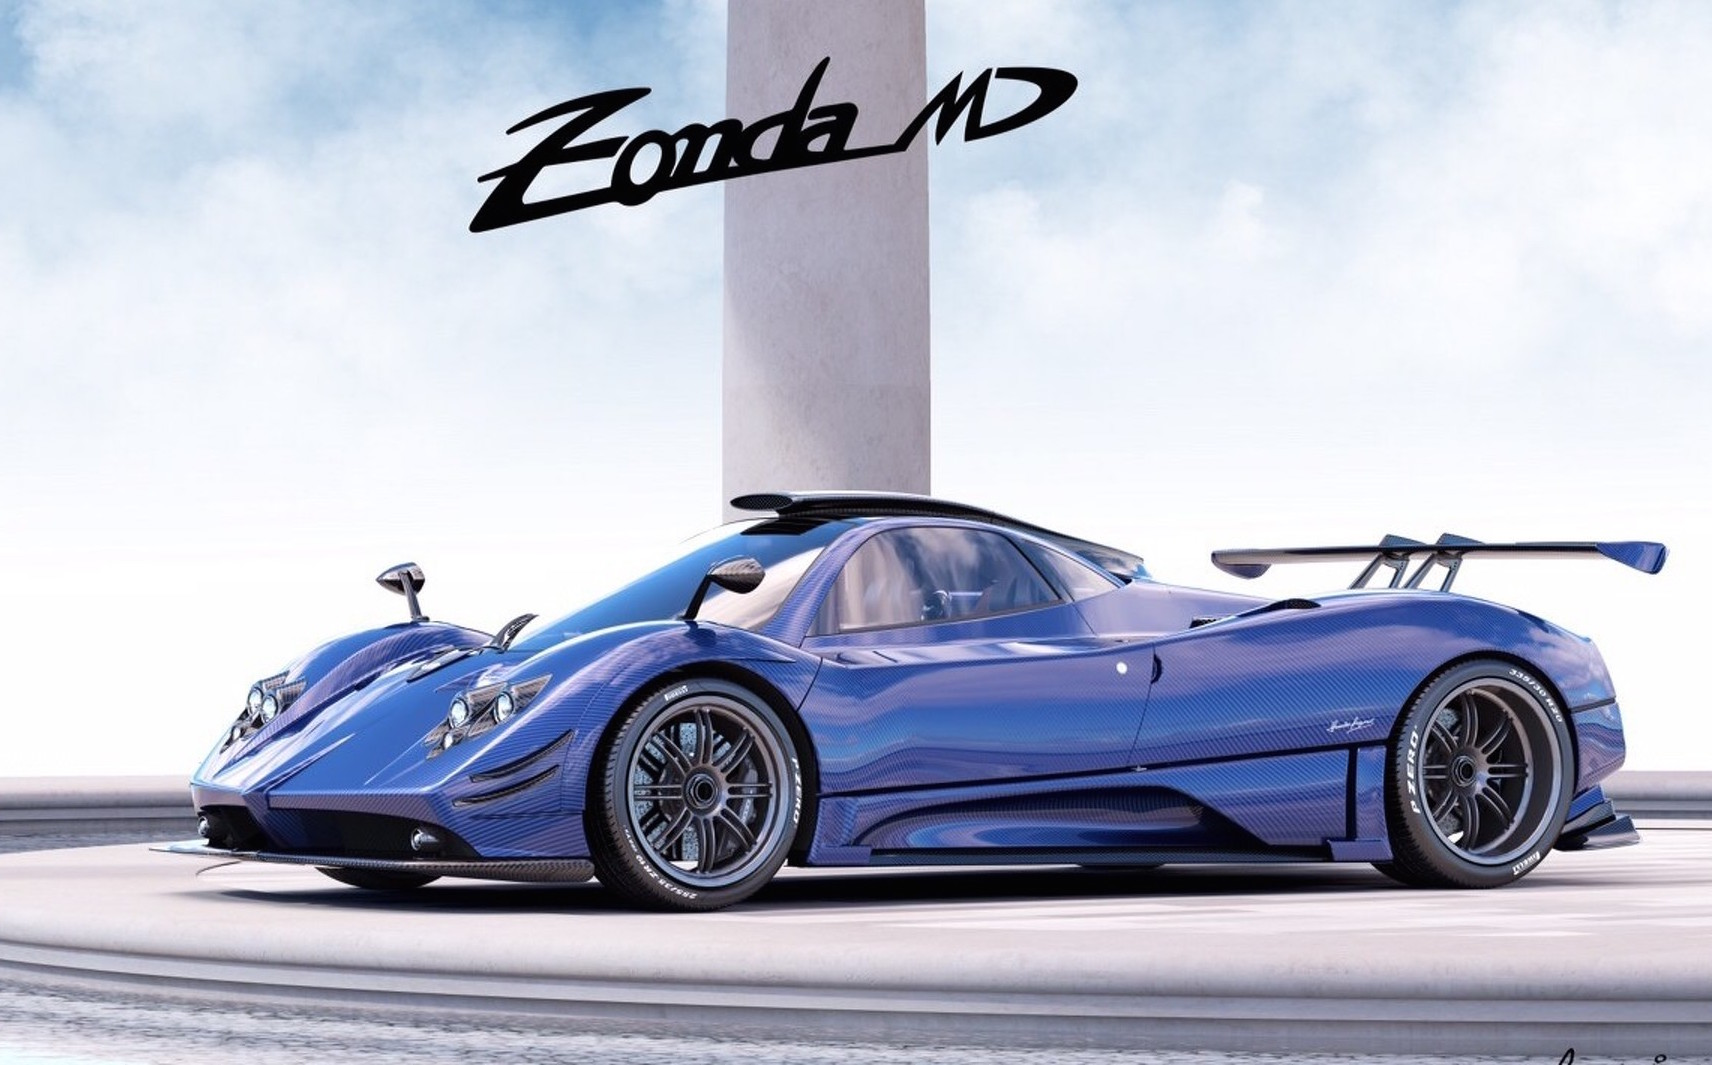 Yet Another Pagani Zonda One Off Special Made The Md